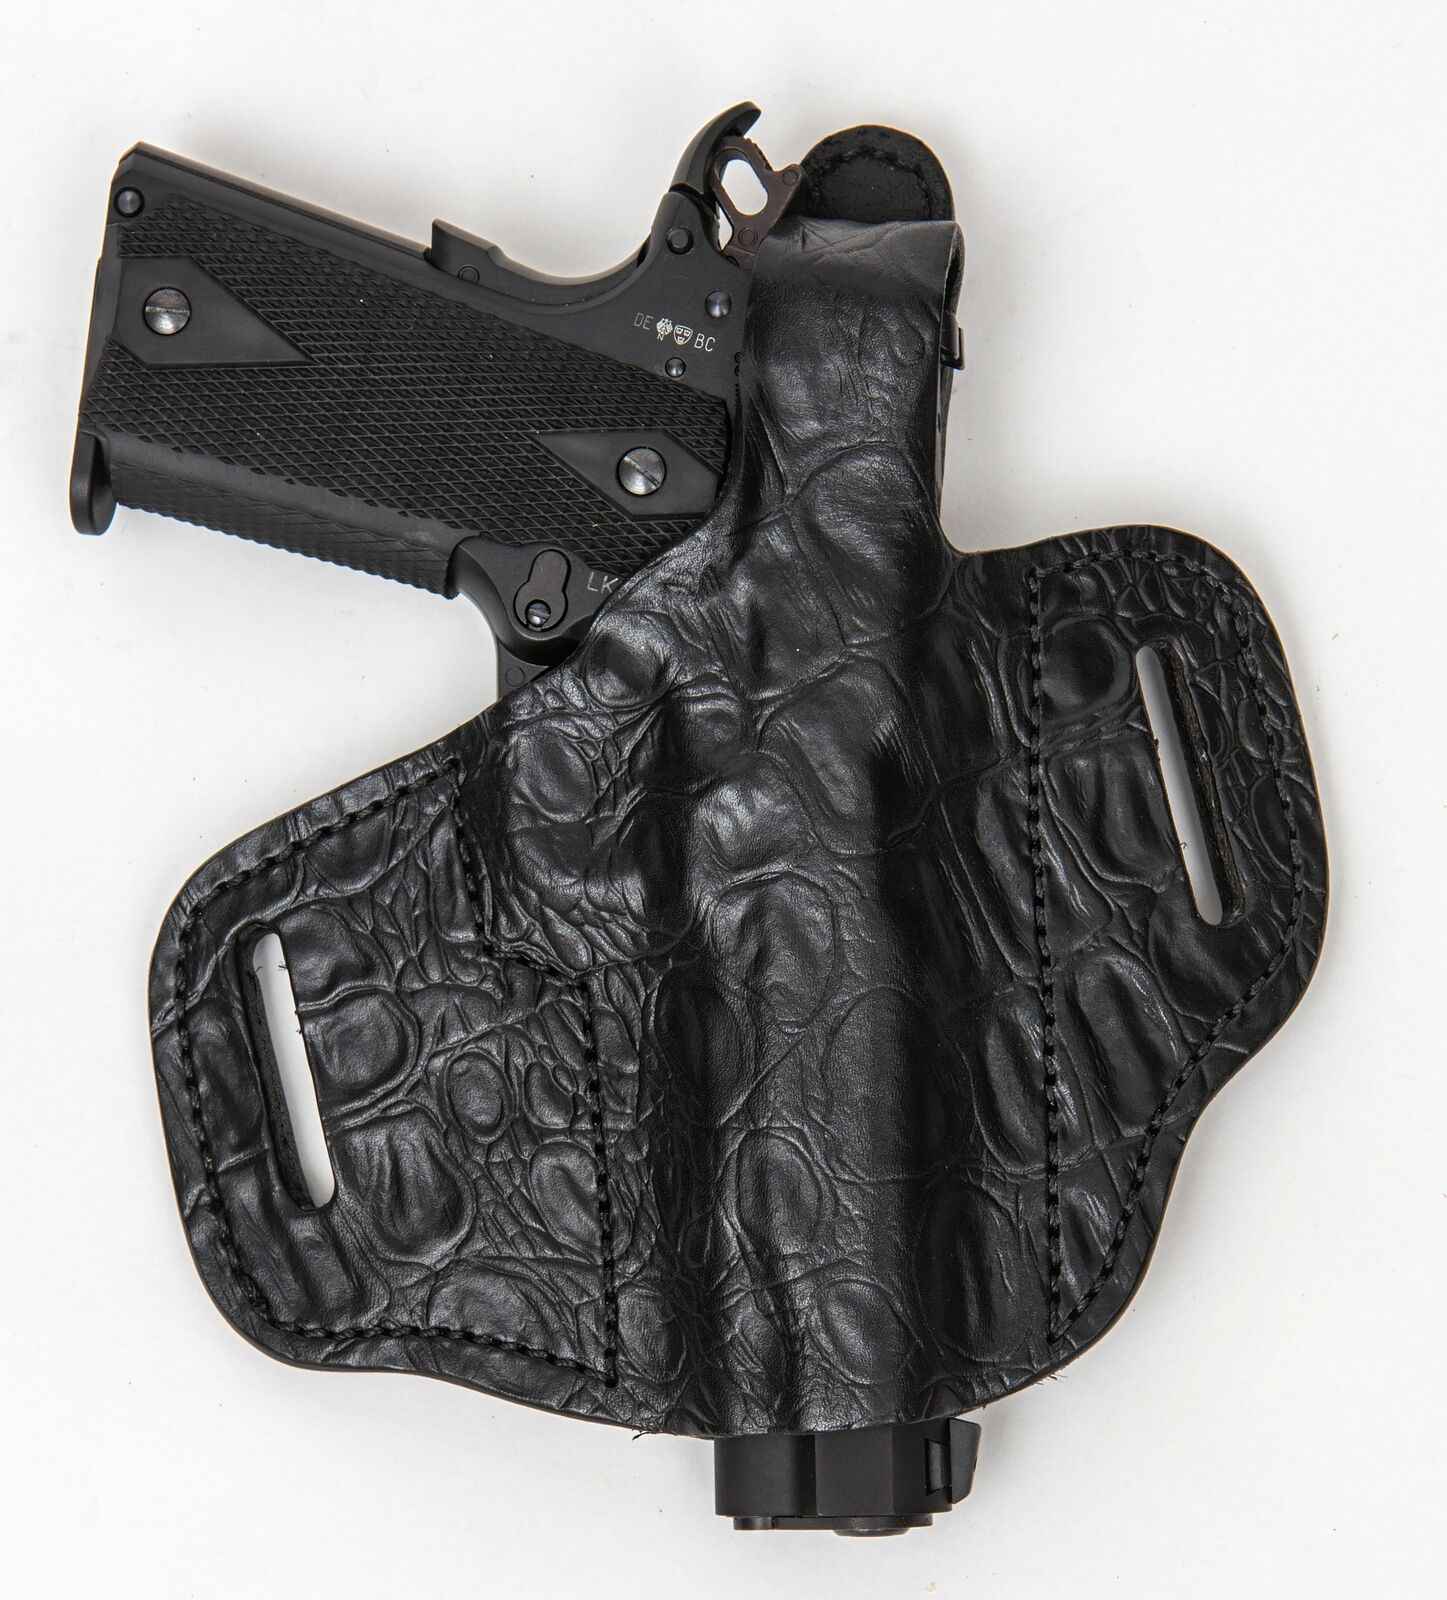 On Duty Conceal RH LH OWB Leather Gun Holster For EAA Witness Polymer Compact